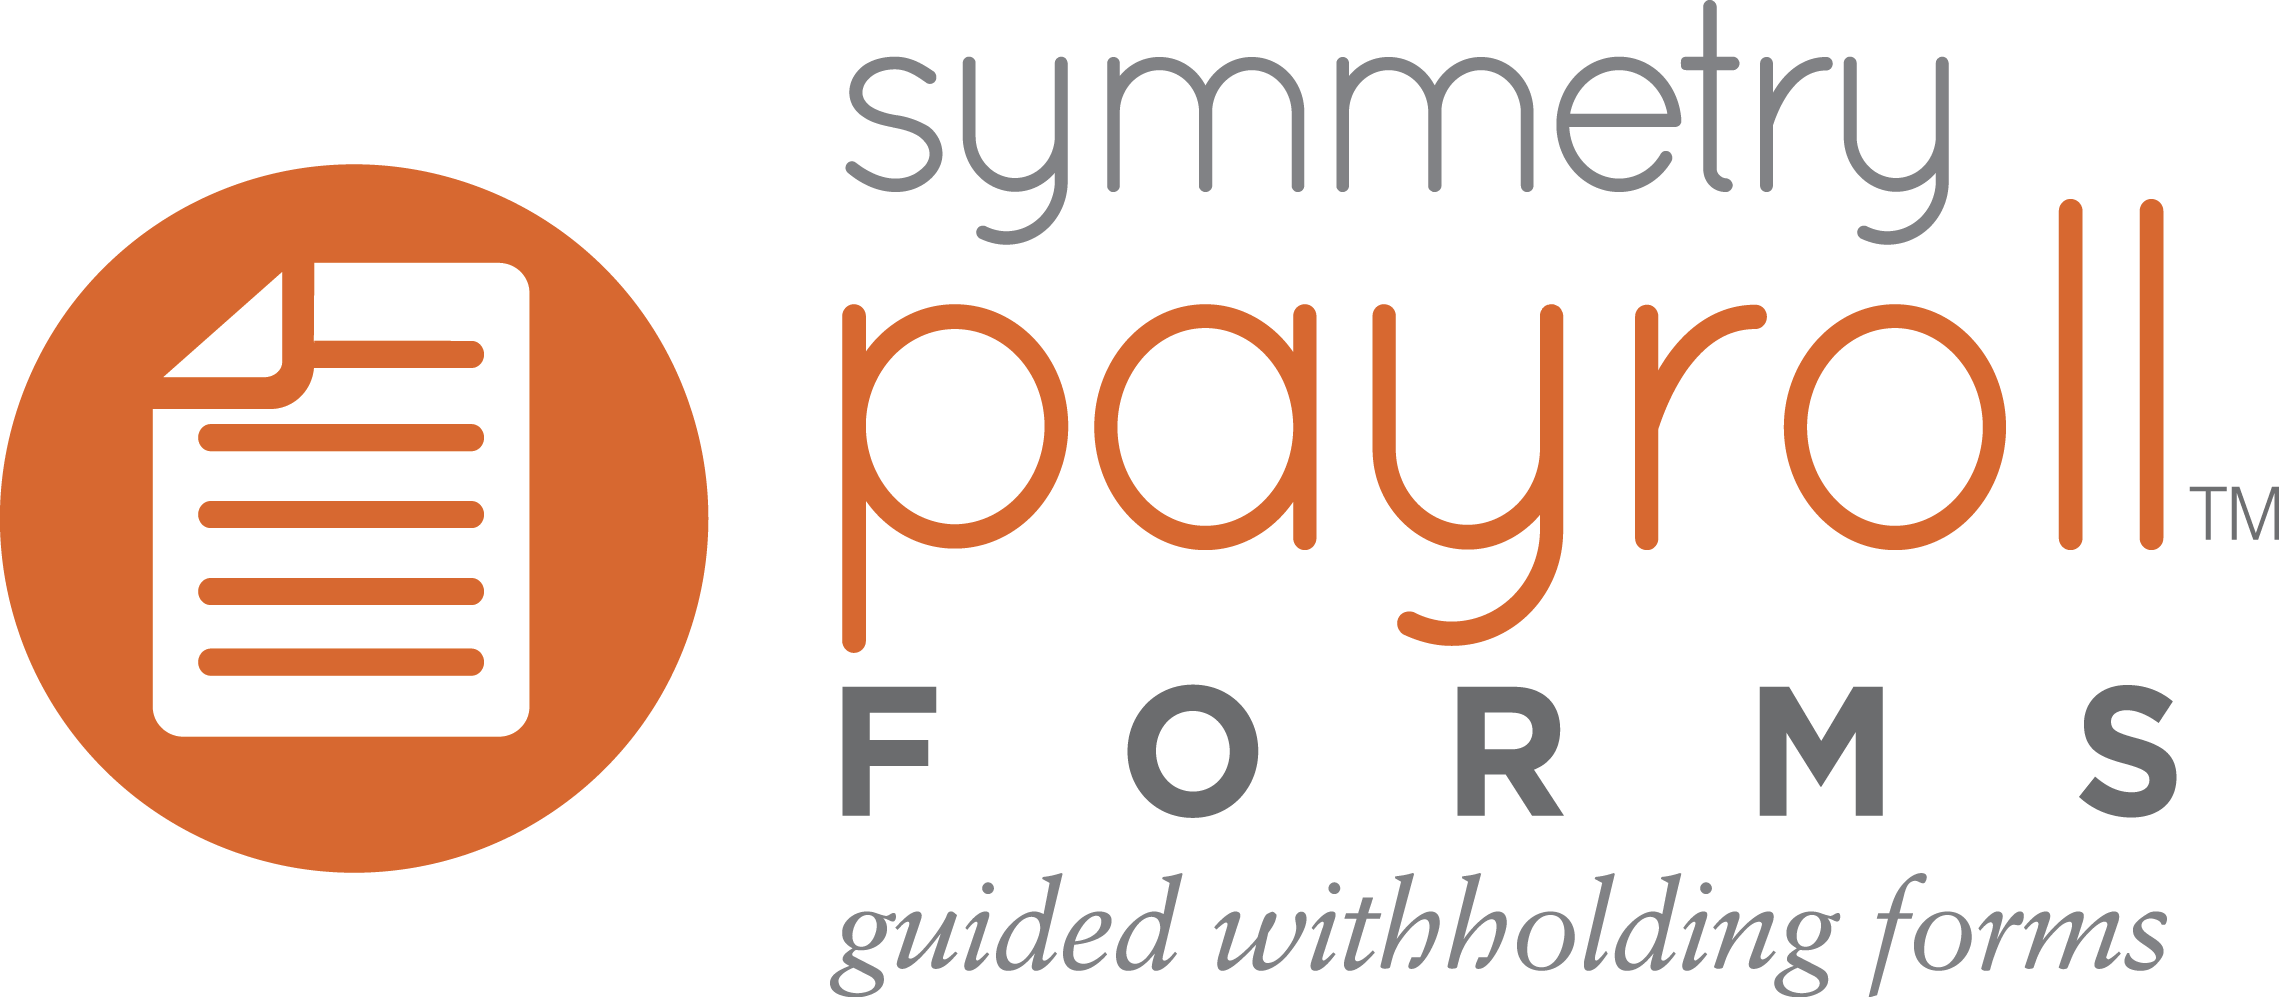 Symmetry softwares maria pickens earns fundamental payroll symmetry payroll forms offers a guided withholding form process for federal state and local formsrm w4 xflitez Choice Image